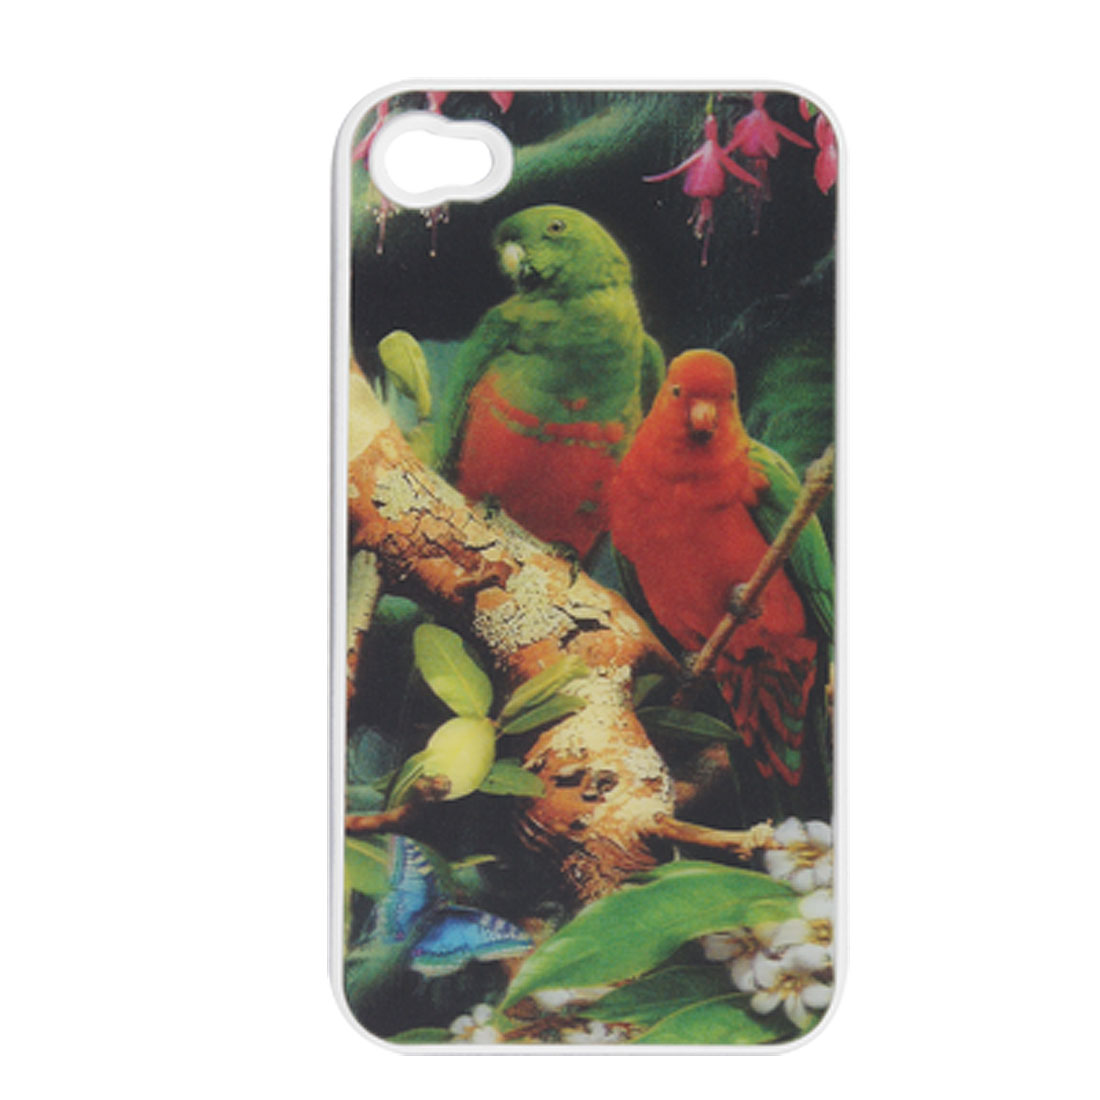 3D Bird Pattern Multicolor Plastic Back Shell for iPhone 4 4G